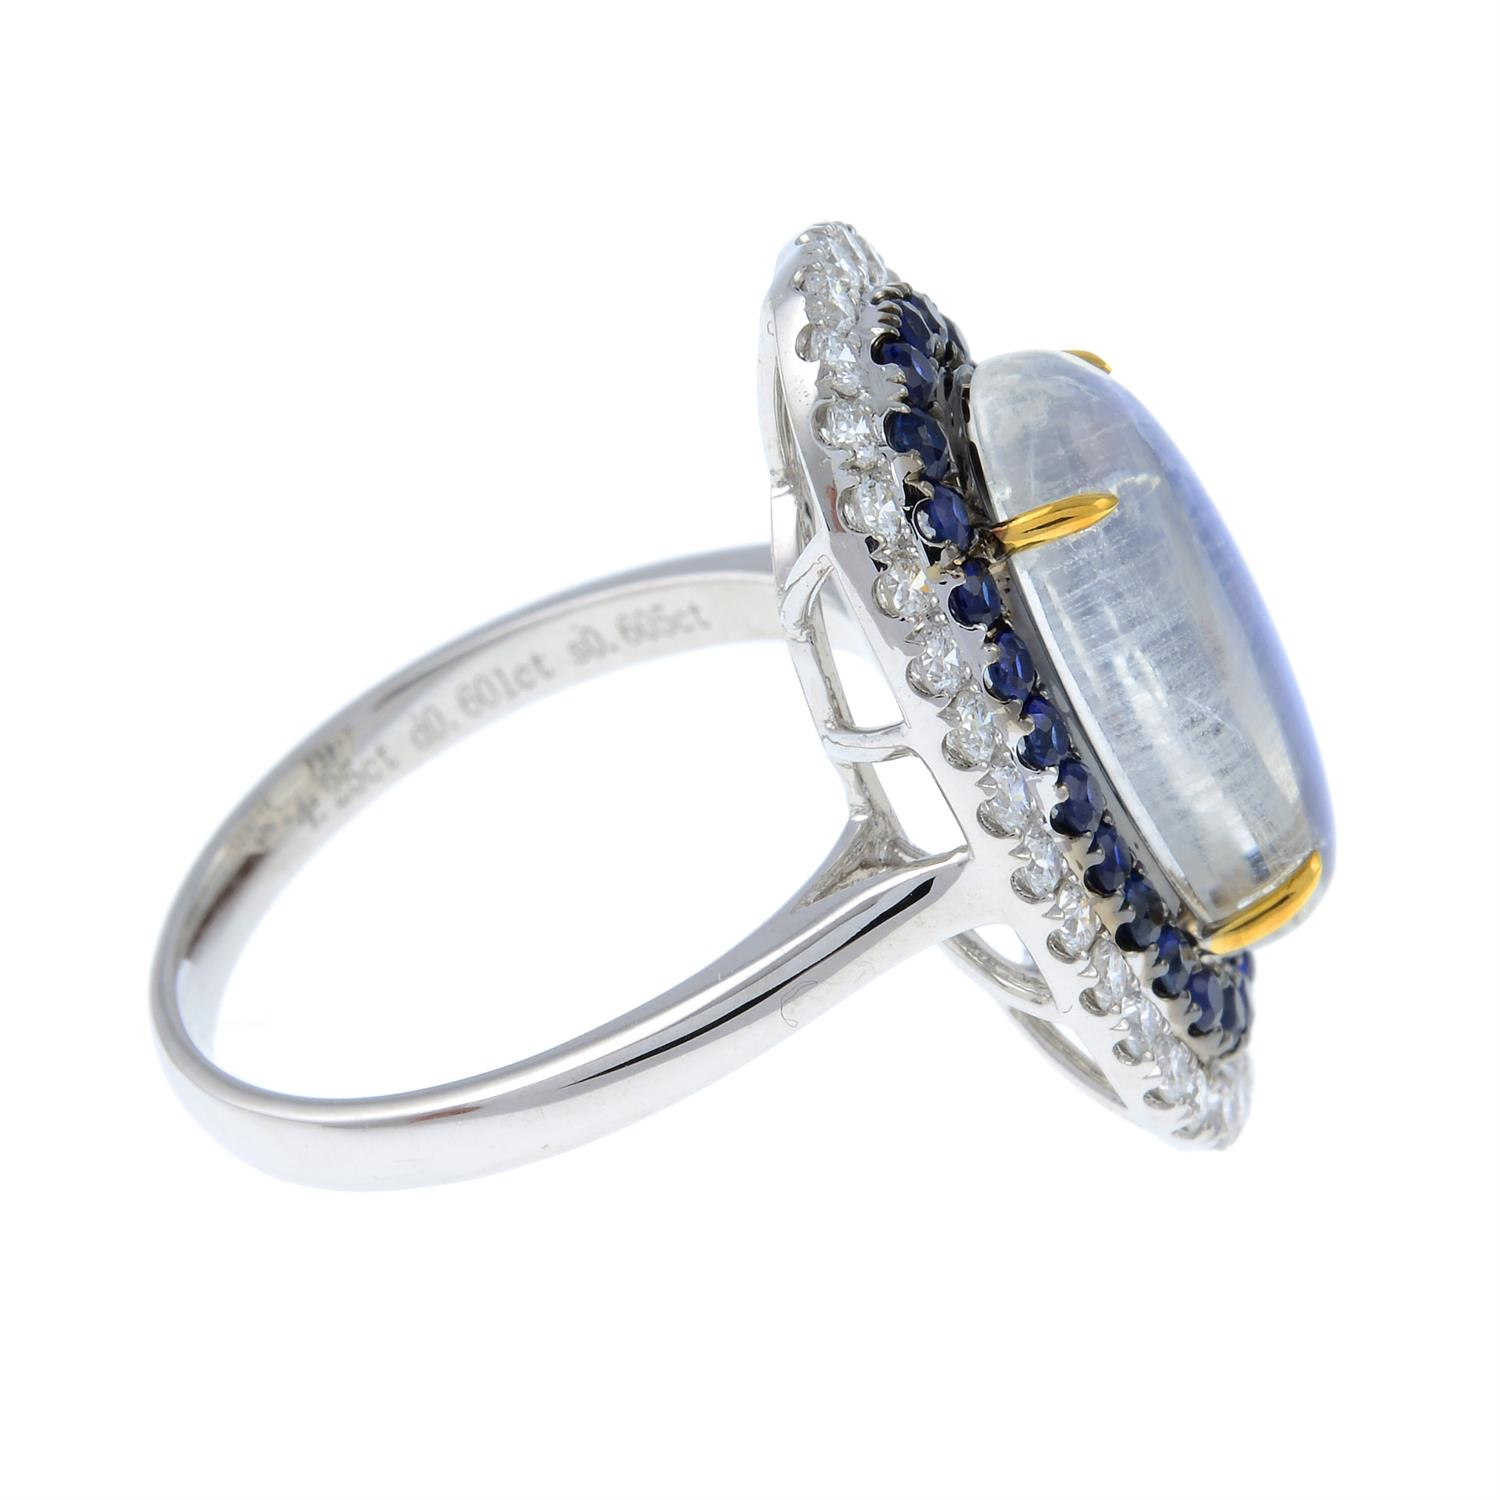 A moonstone, sapphire and diamond ring. - Image 4 of 6